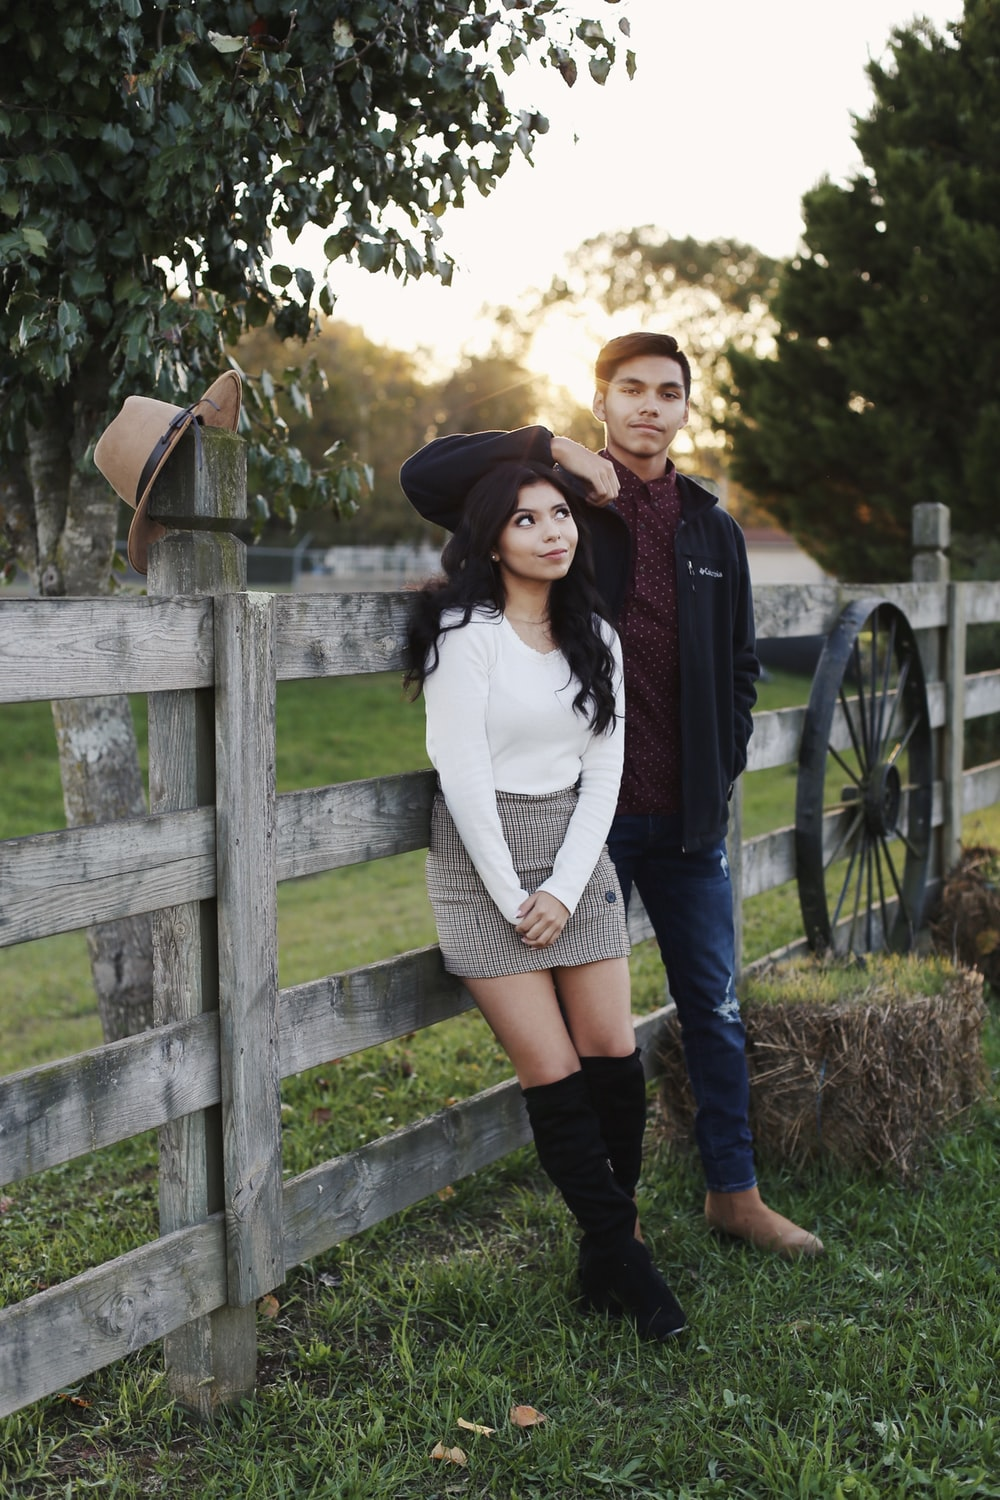 man and woman leaning against a wooden fence